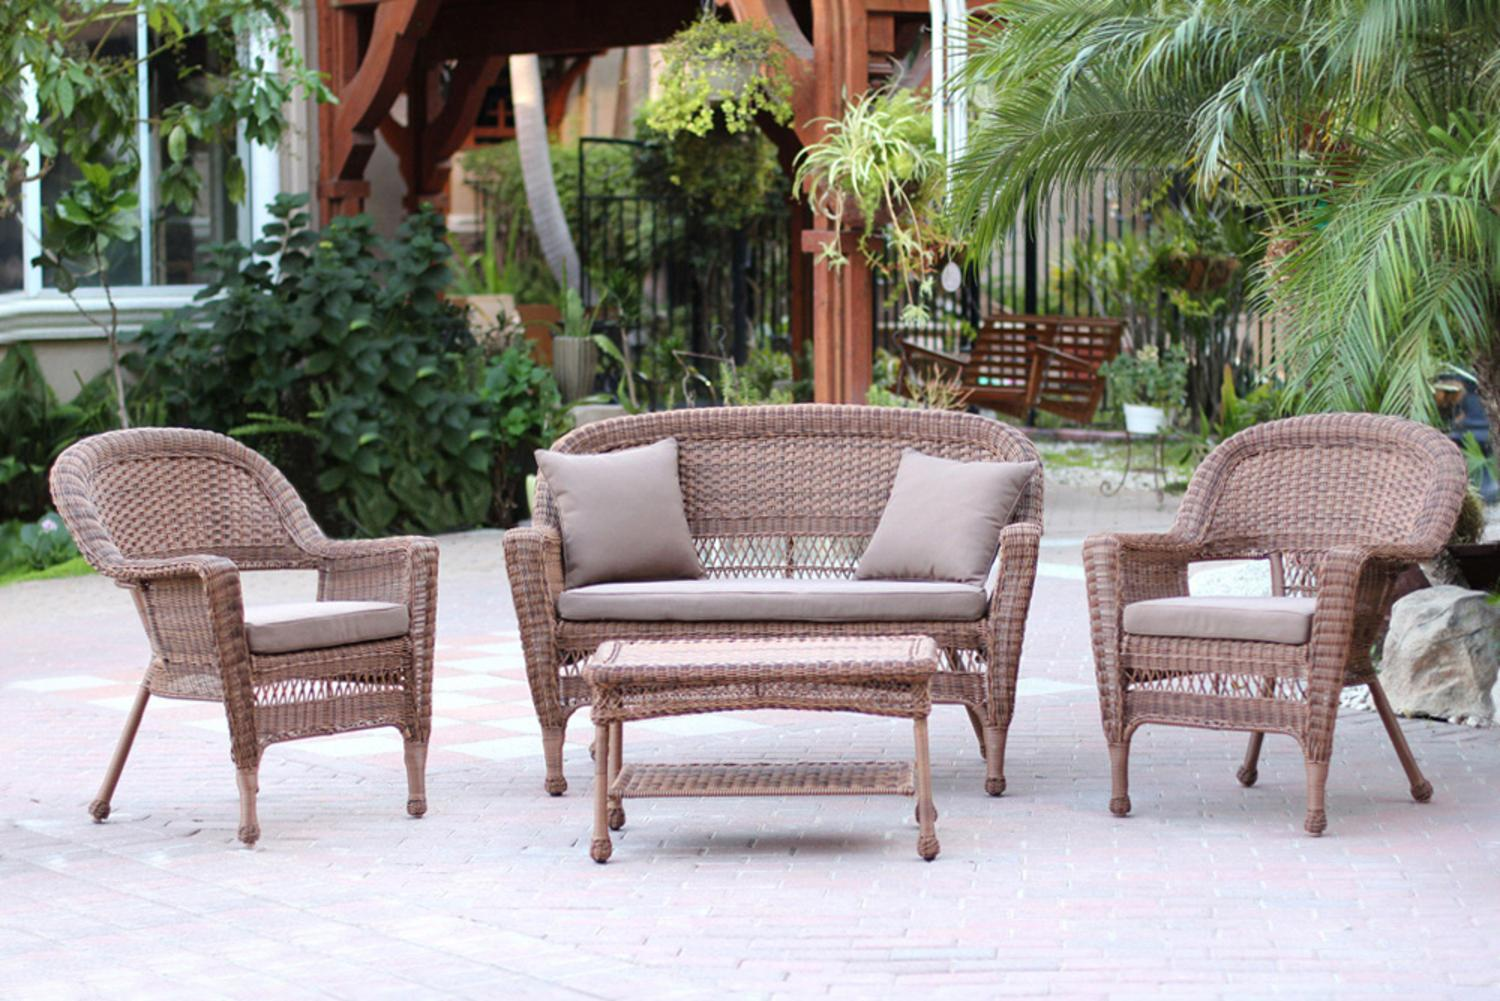 4-Piece Honey Wicker Patio Chairs, Loveseat & Table Furniture Set Brown Cushions by CC Outdoor Living